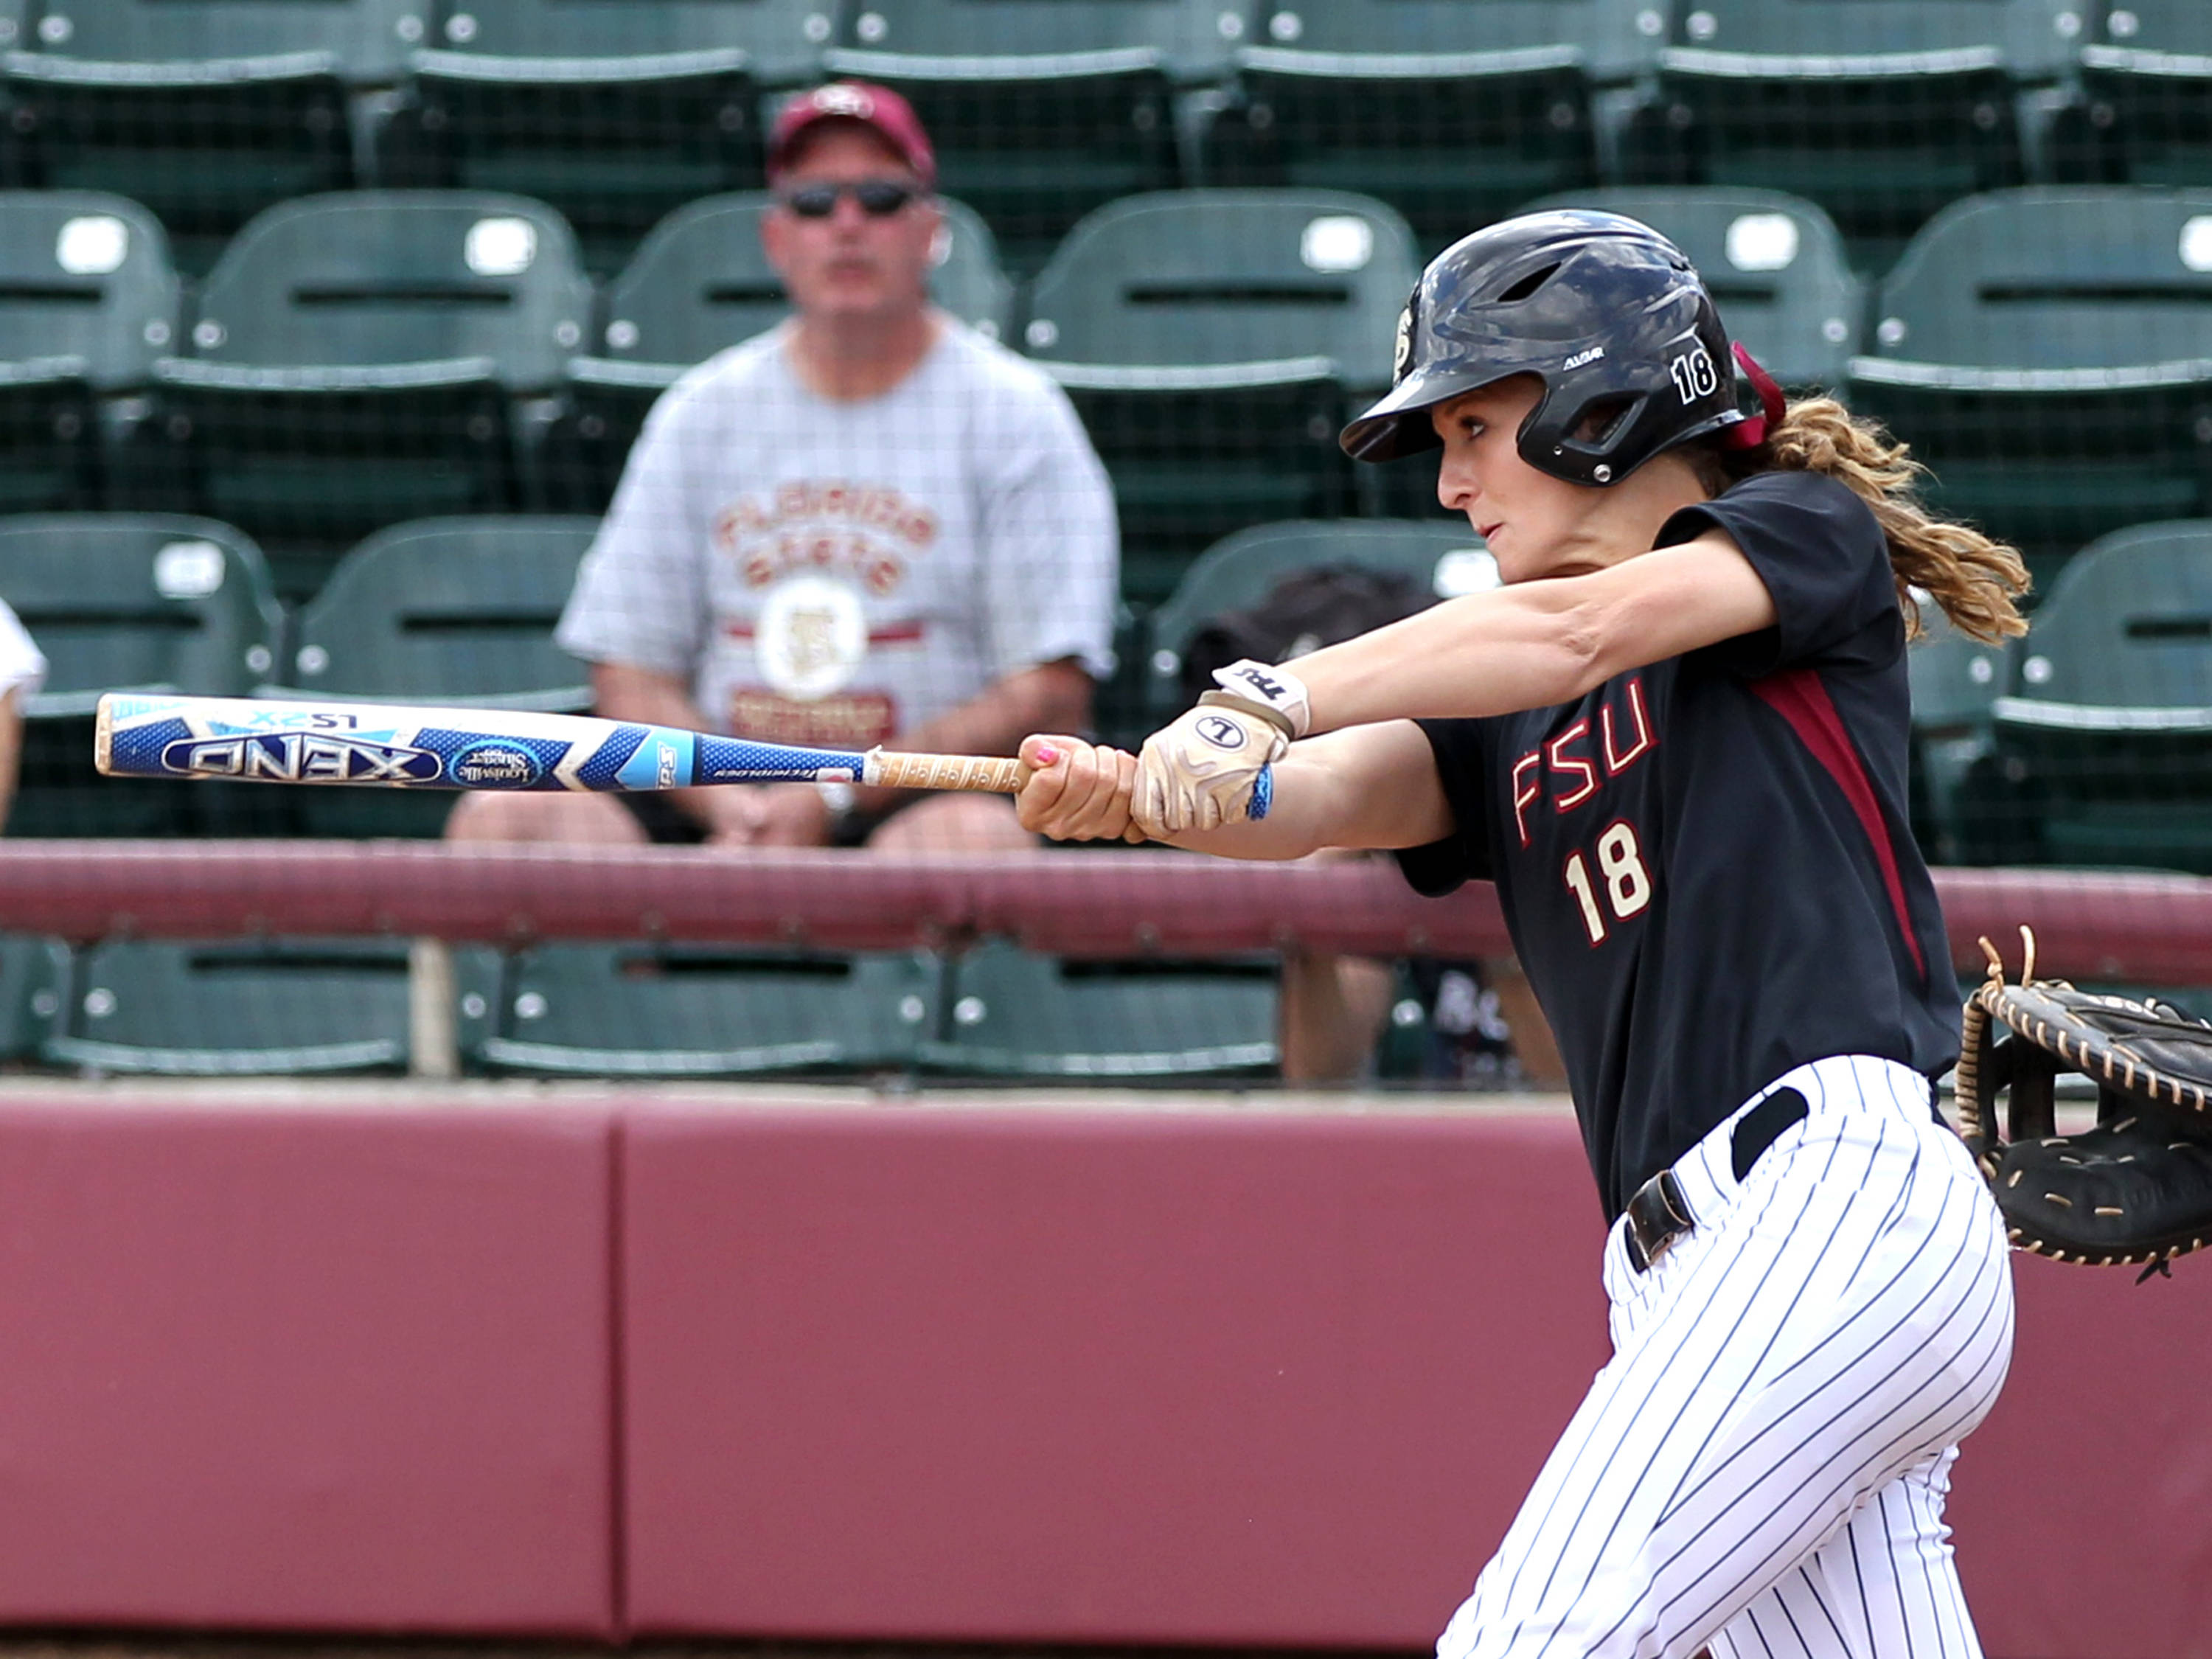 Victoria East (18), FSU vs BC, 04/07/13 . (Photo by Steve Musco)